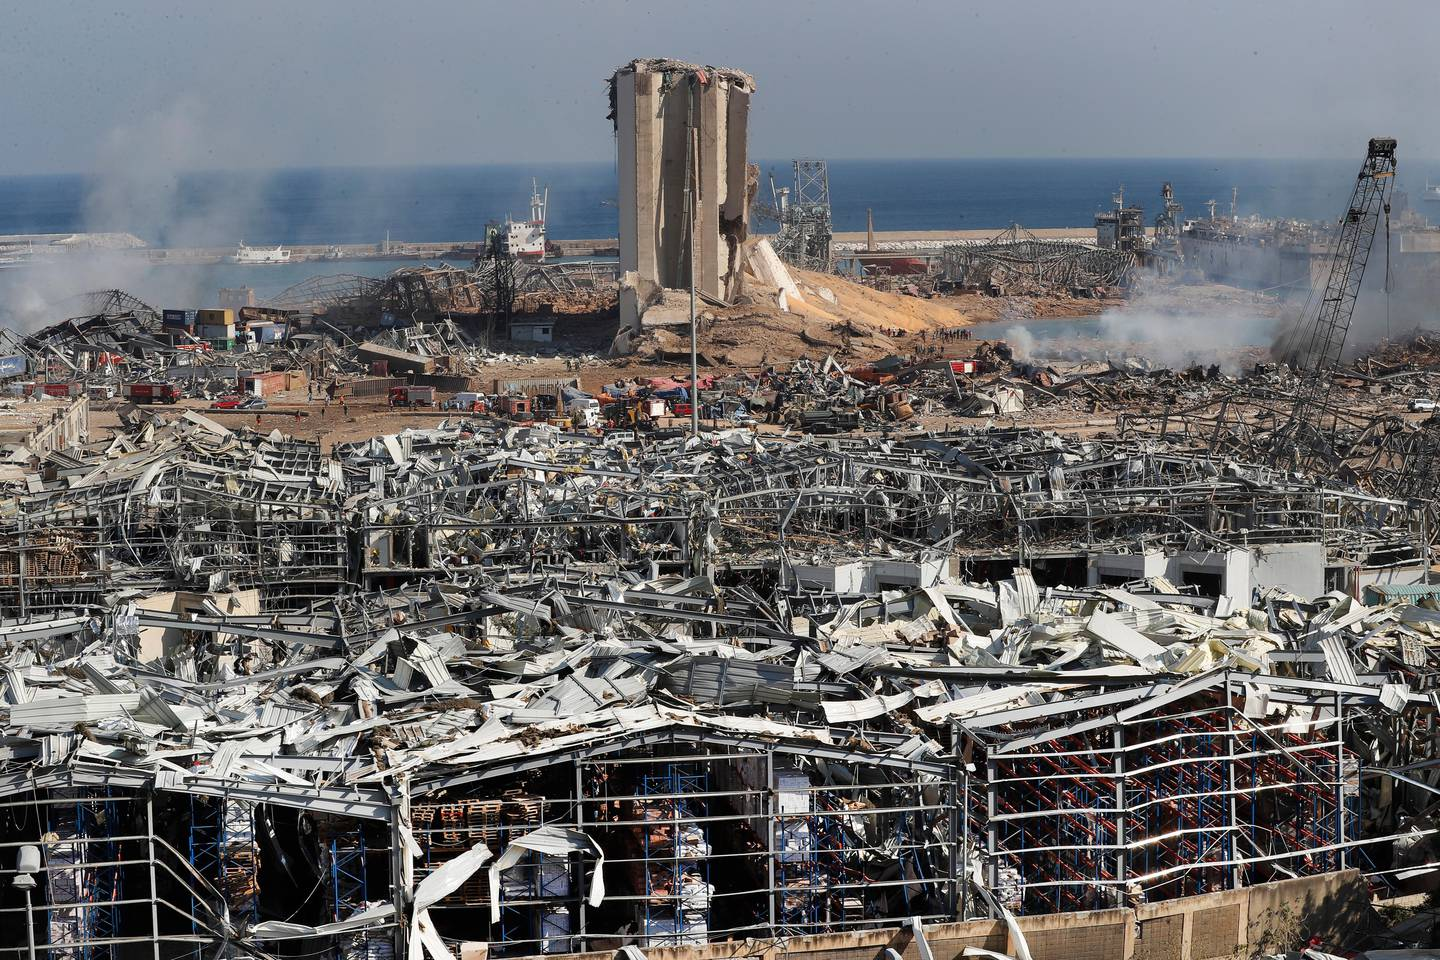 """Rescue workers and security officers work at the scene of an explosion that hit the seaport of Beirut, Lebanon, Wednesday, Aug. 5, 2020. Prime Minister Hassan Diab, in a short televised speech, has appealed to all countries and friends of Lebanon to extend help to the small nation, saying: """"We are witnessing a real catastrophe."""" (AP Photo/Hussein Malla)"""